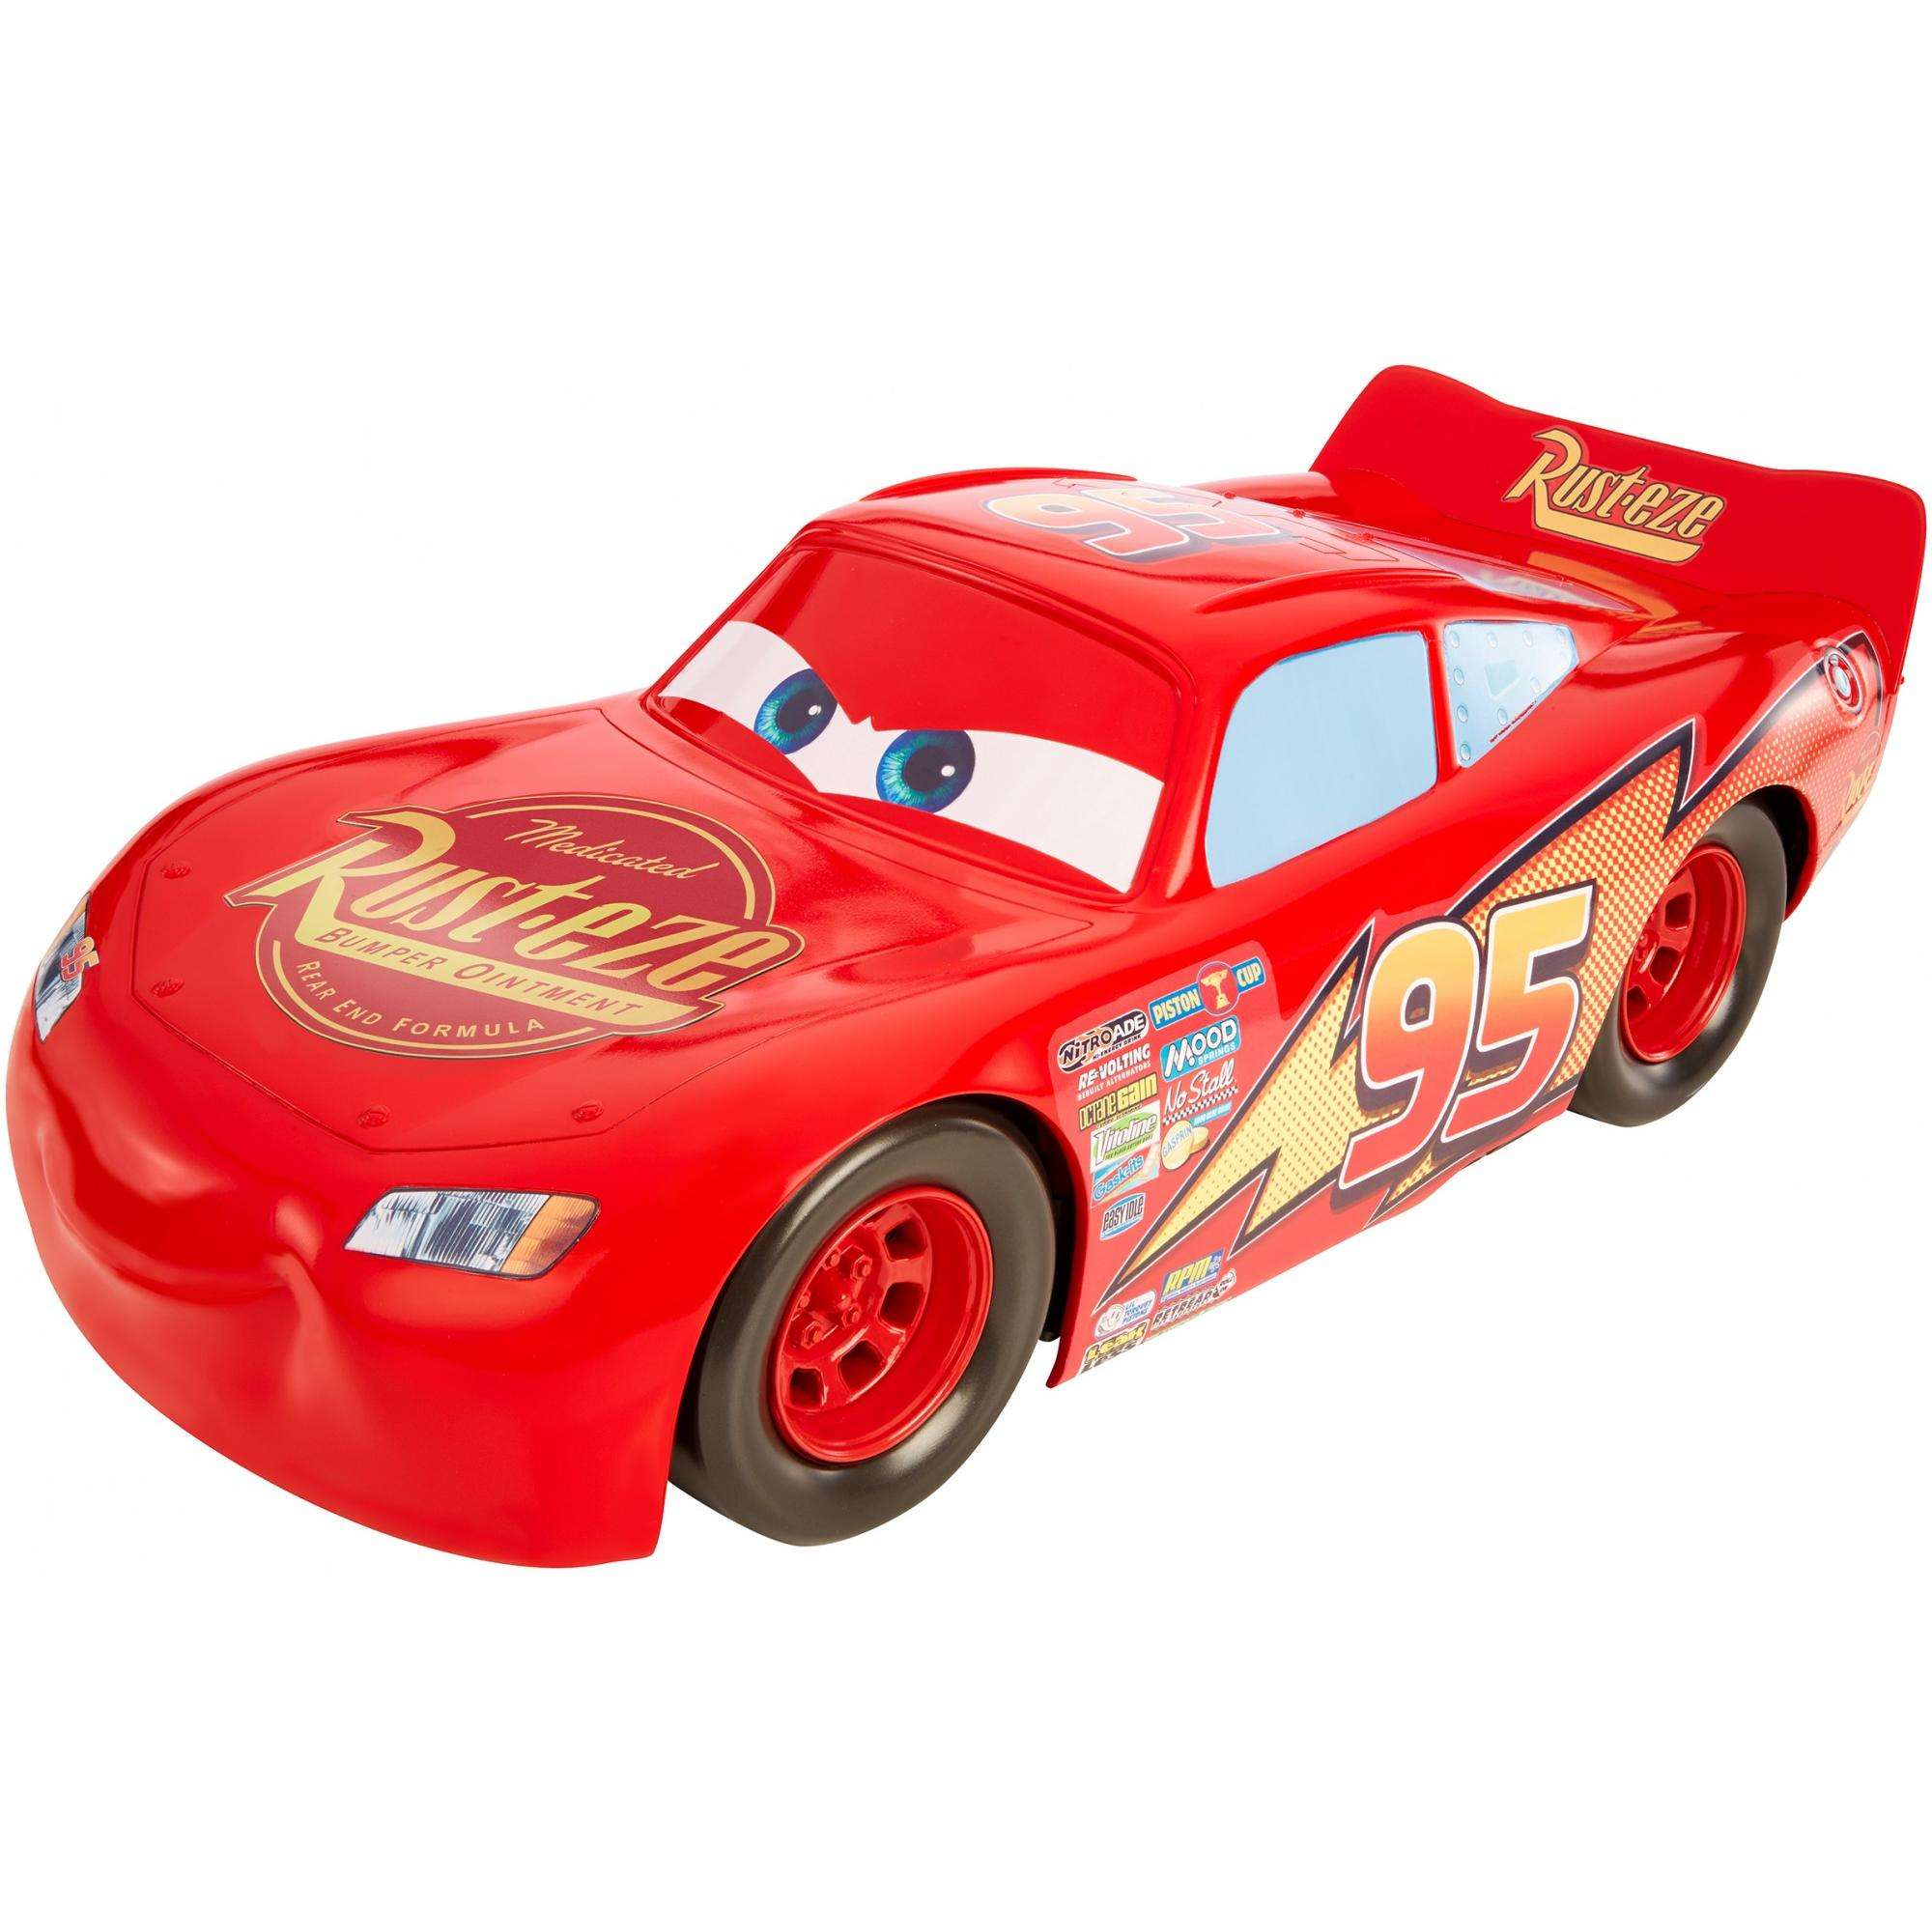 Disney Pixar Cars 3 Lightning Mcqueen 20 Inch Vehicle Walmart Com